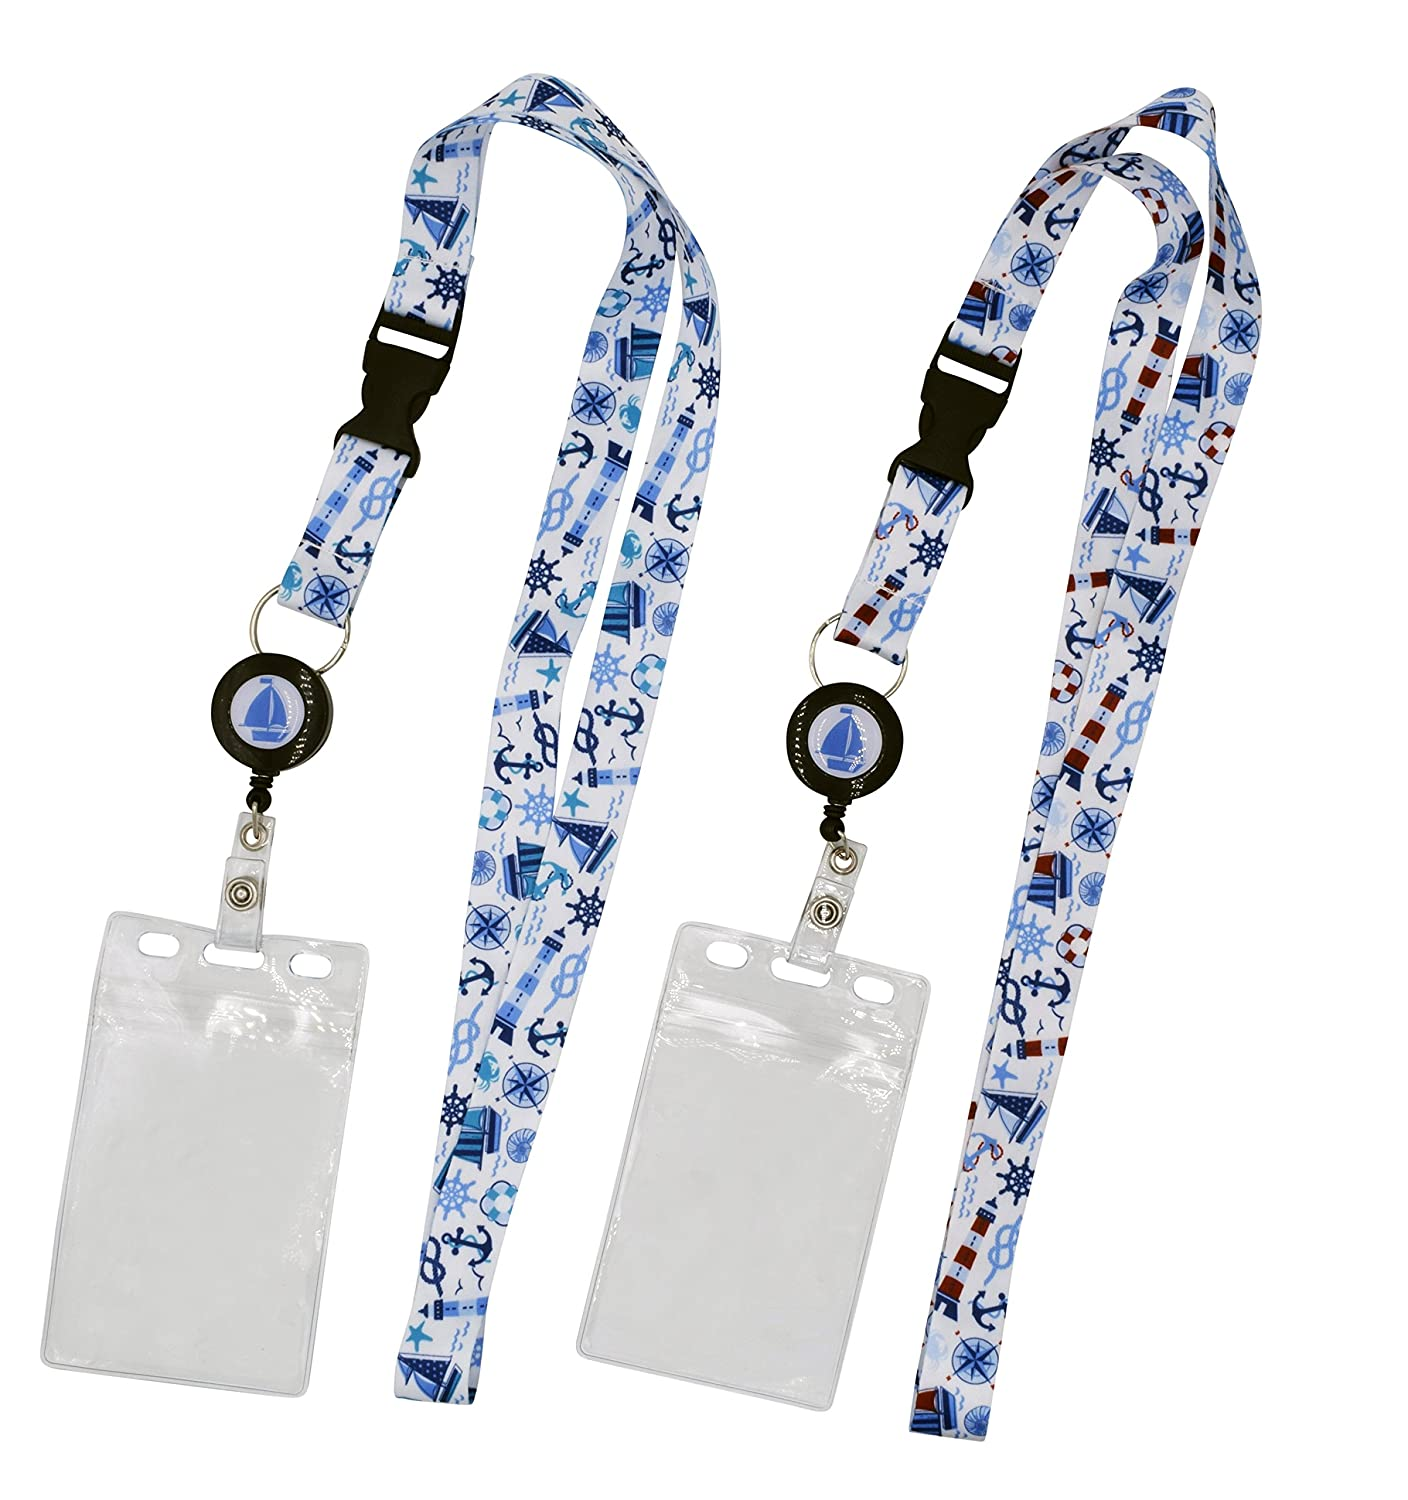 2-Pack Cruise Lanyard with Retractable Badge Reel, Water Resistant Badge Holder, and Snap Buckle, Teal and Blue Set Limeloot